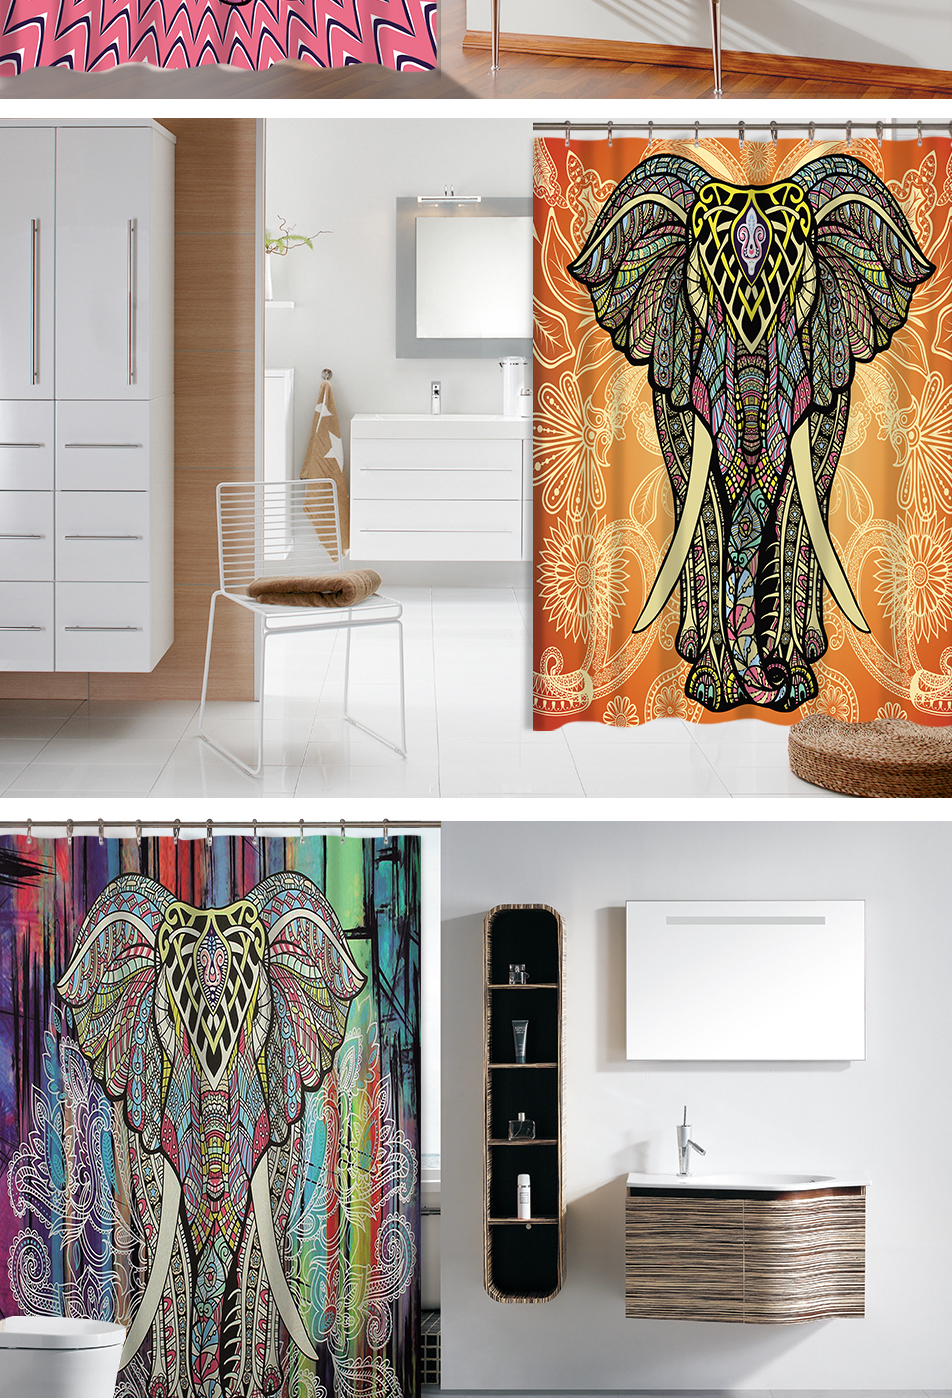 Indian Style Colorful Printed Waterproof Bathroom Curtain and Mat